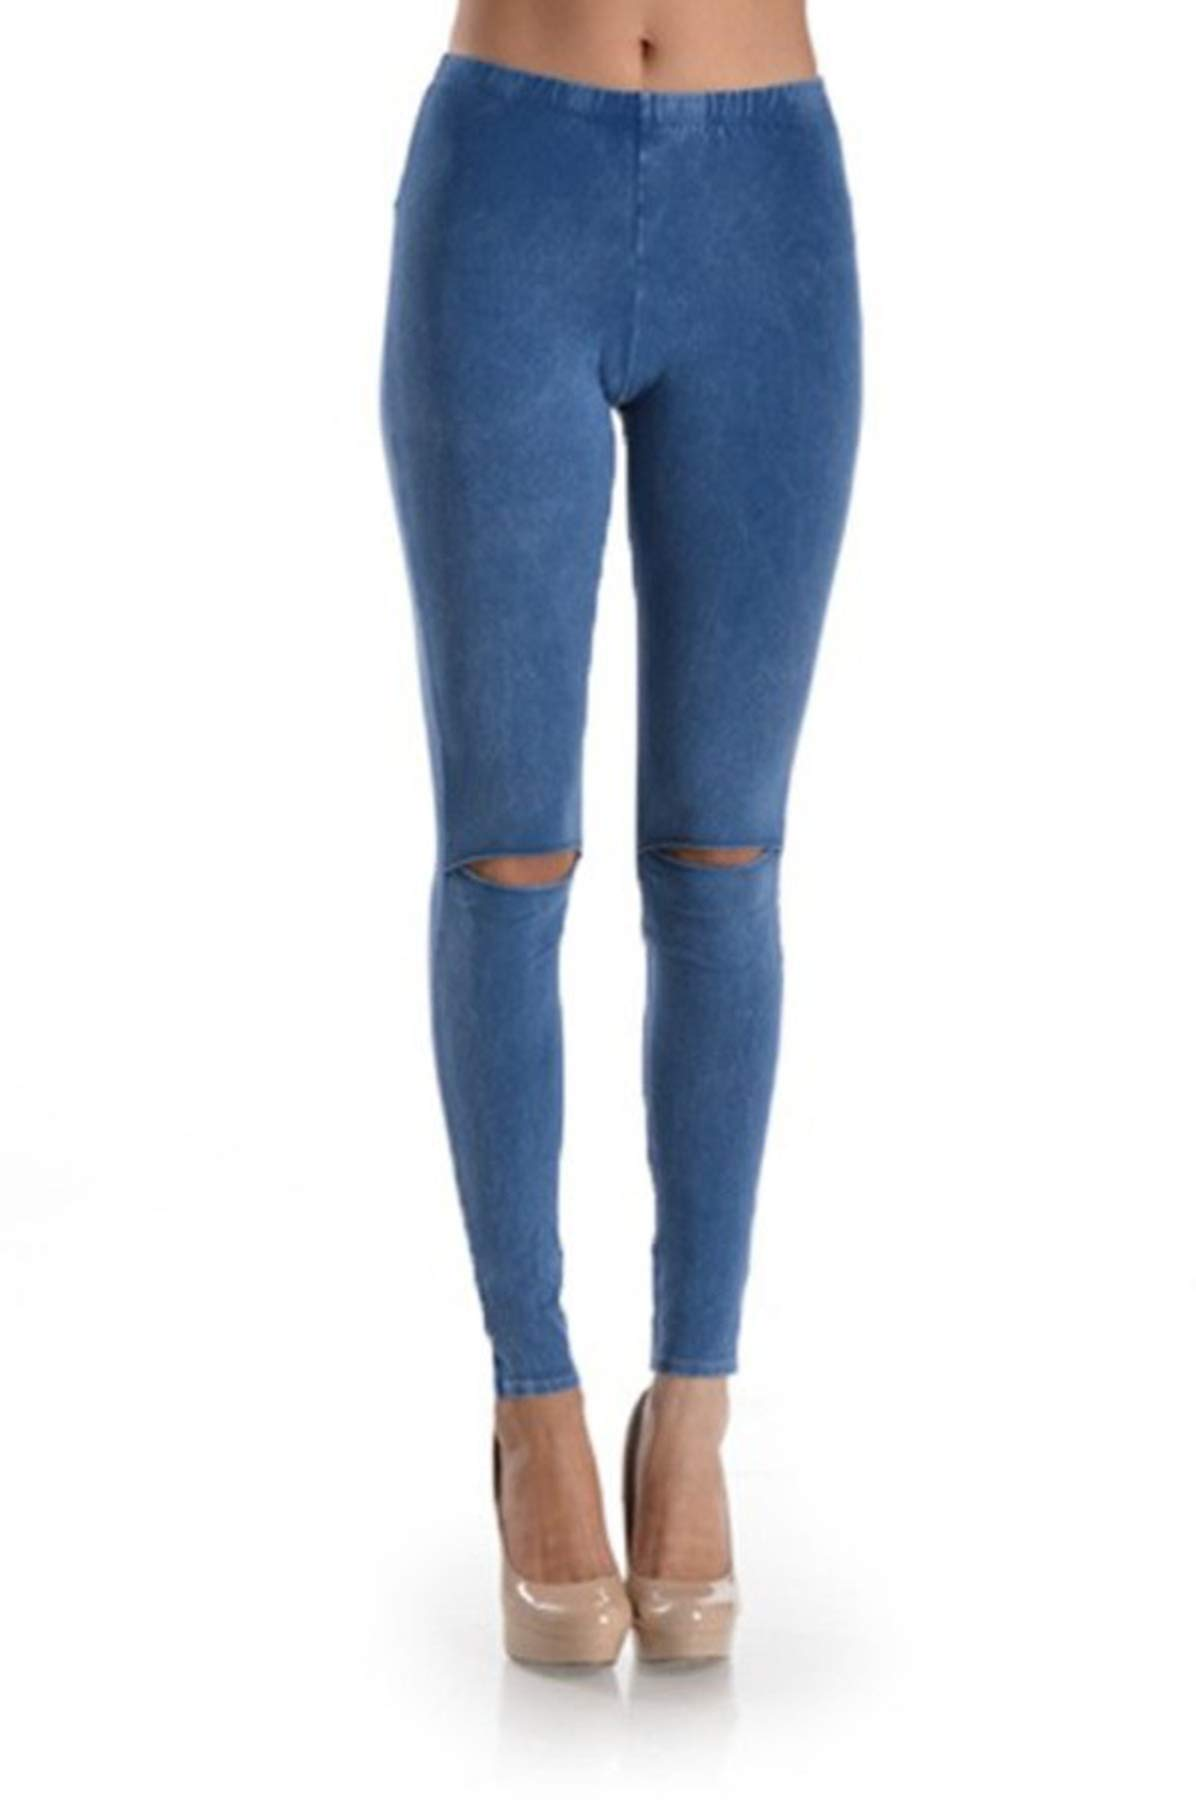 T Party Womens Knit Legging with Slit Detail, Metallic Foil Pattern, and Elastic Waistband. Mid Rise (Denim Blue, X-Large)